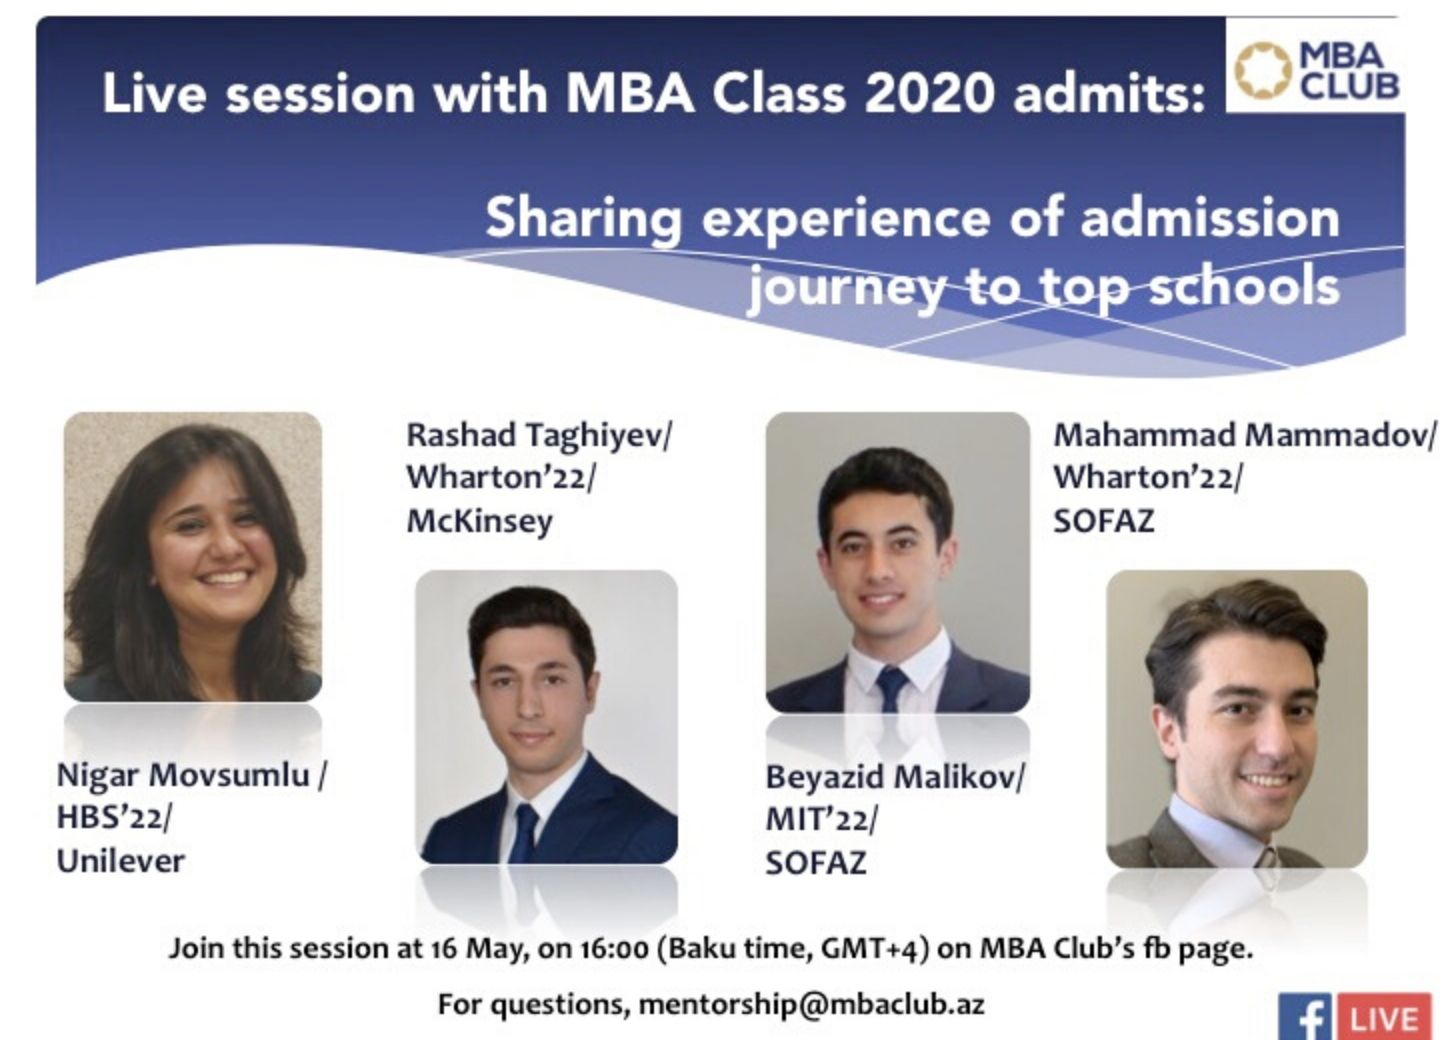 MBA Club Mentorship: в помощь молодежи Азербайджана, нацеленной на международную степень по управлению бизнесом